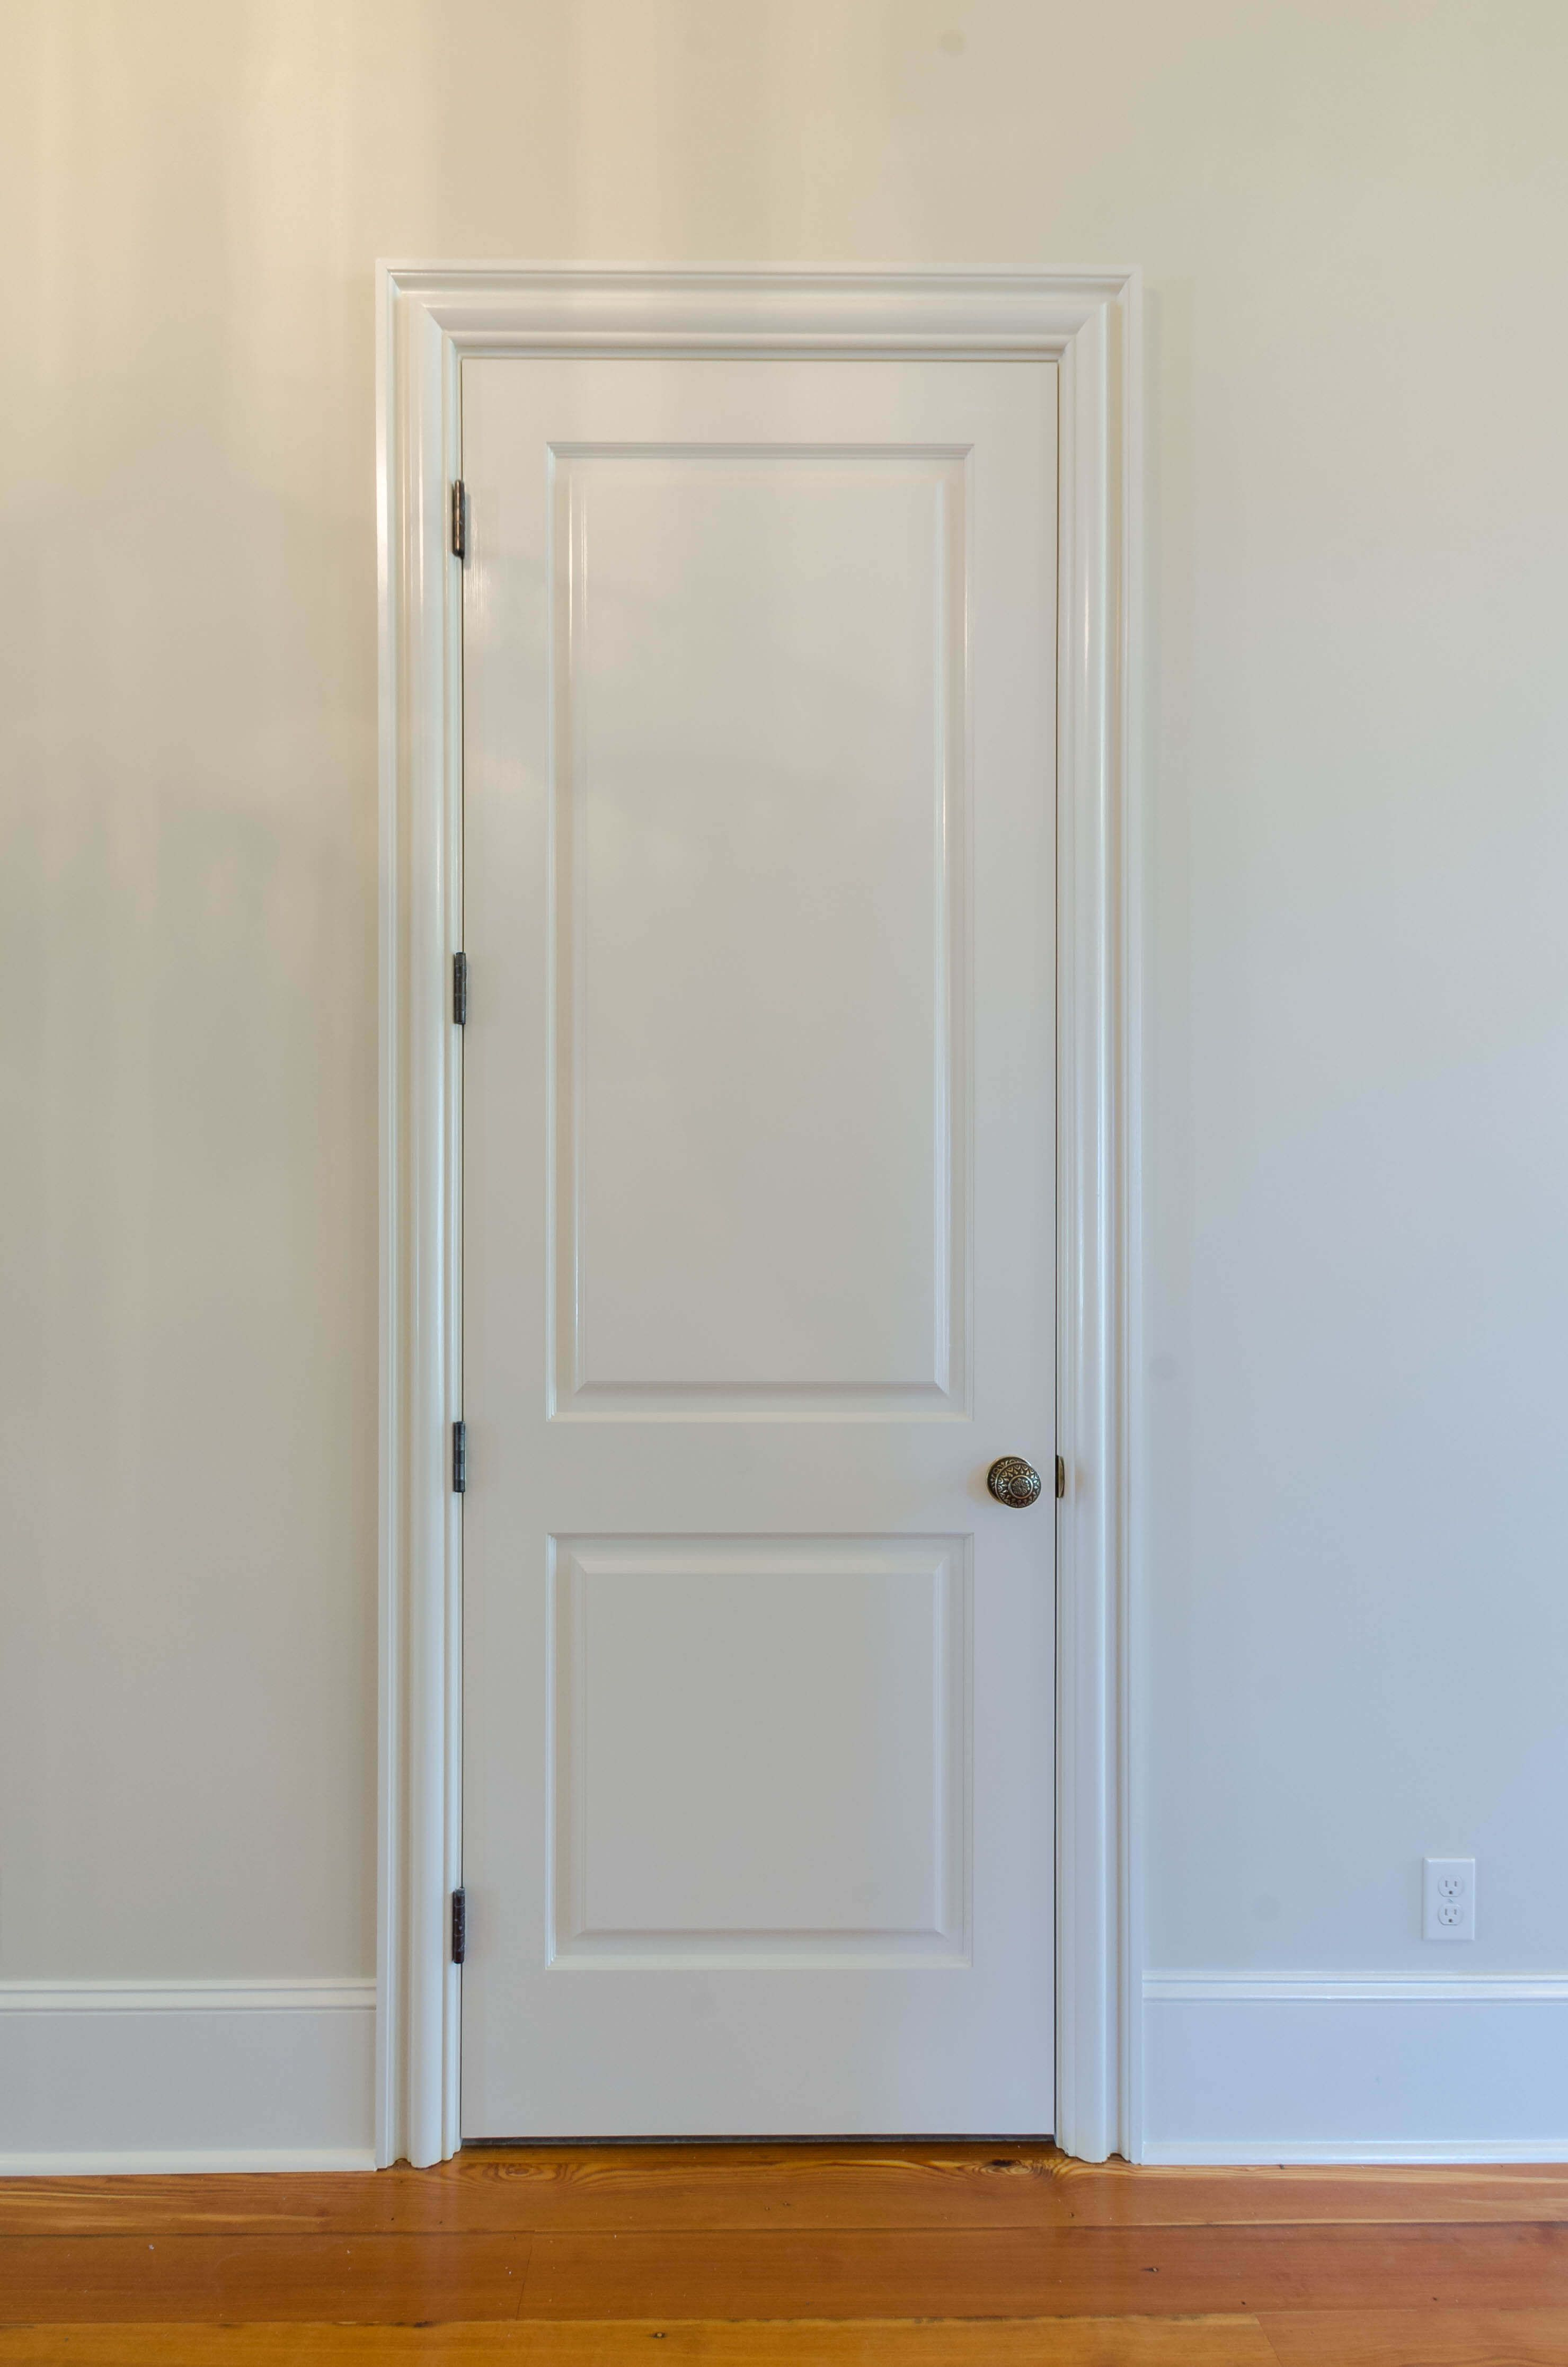 Like The Door Style And Trim And Baseboards Doors Interior Southern Style Homes Doors